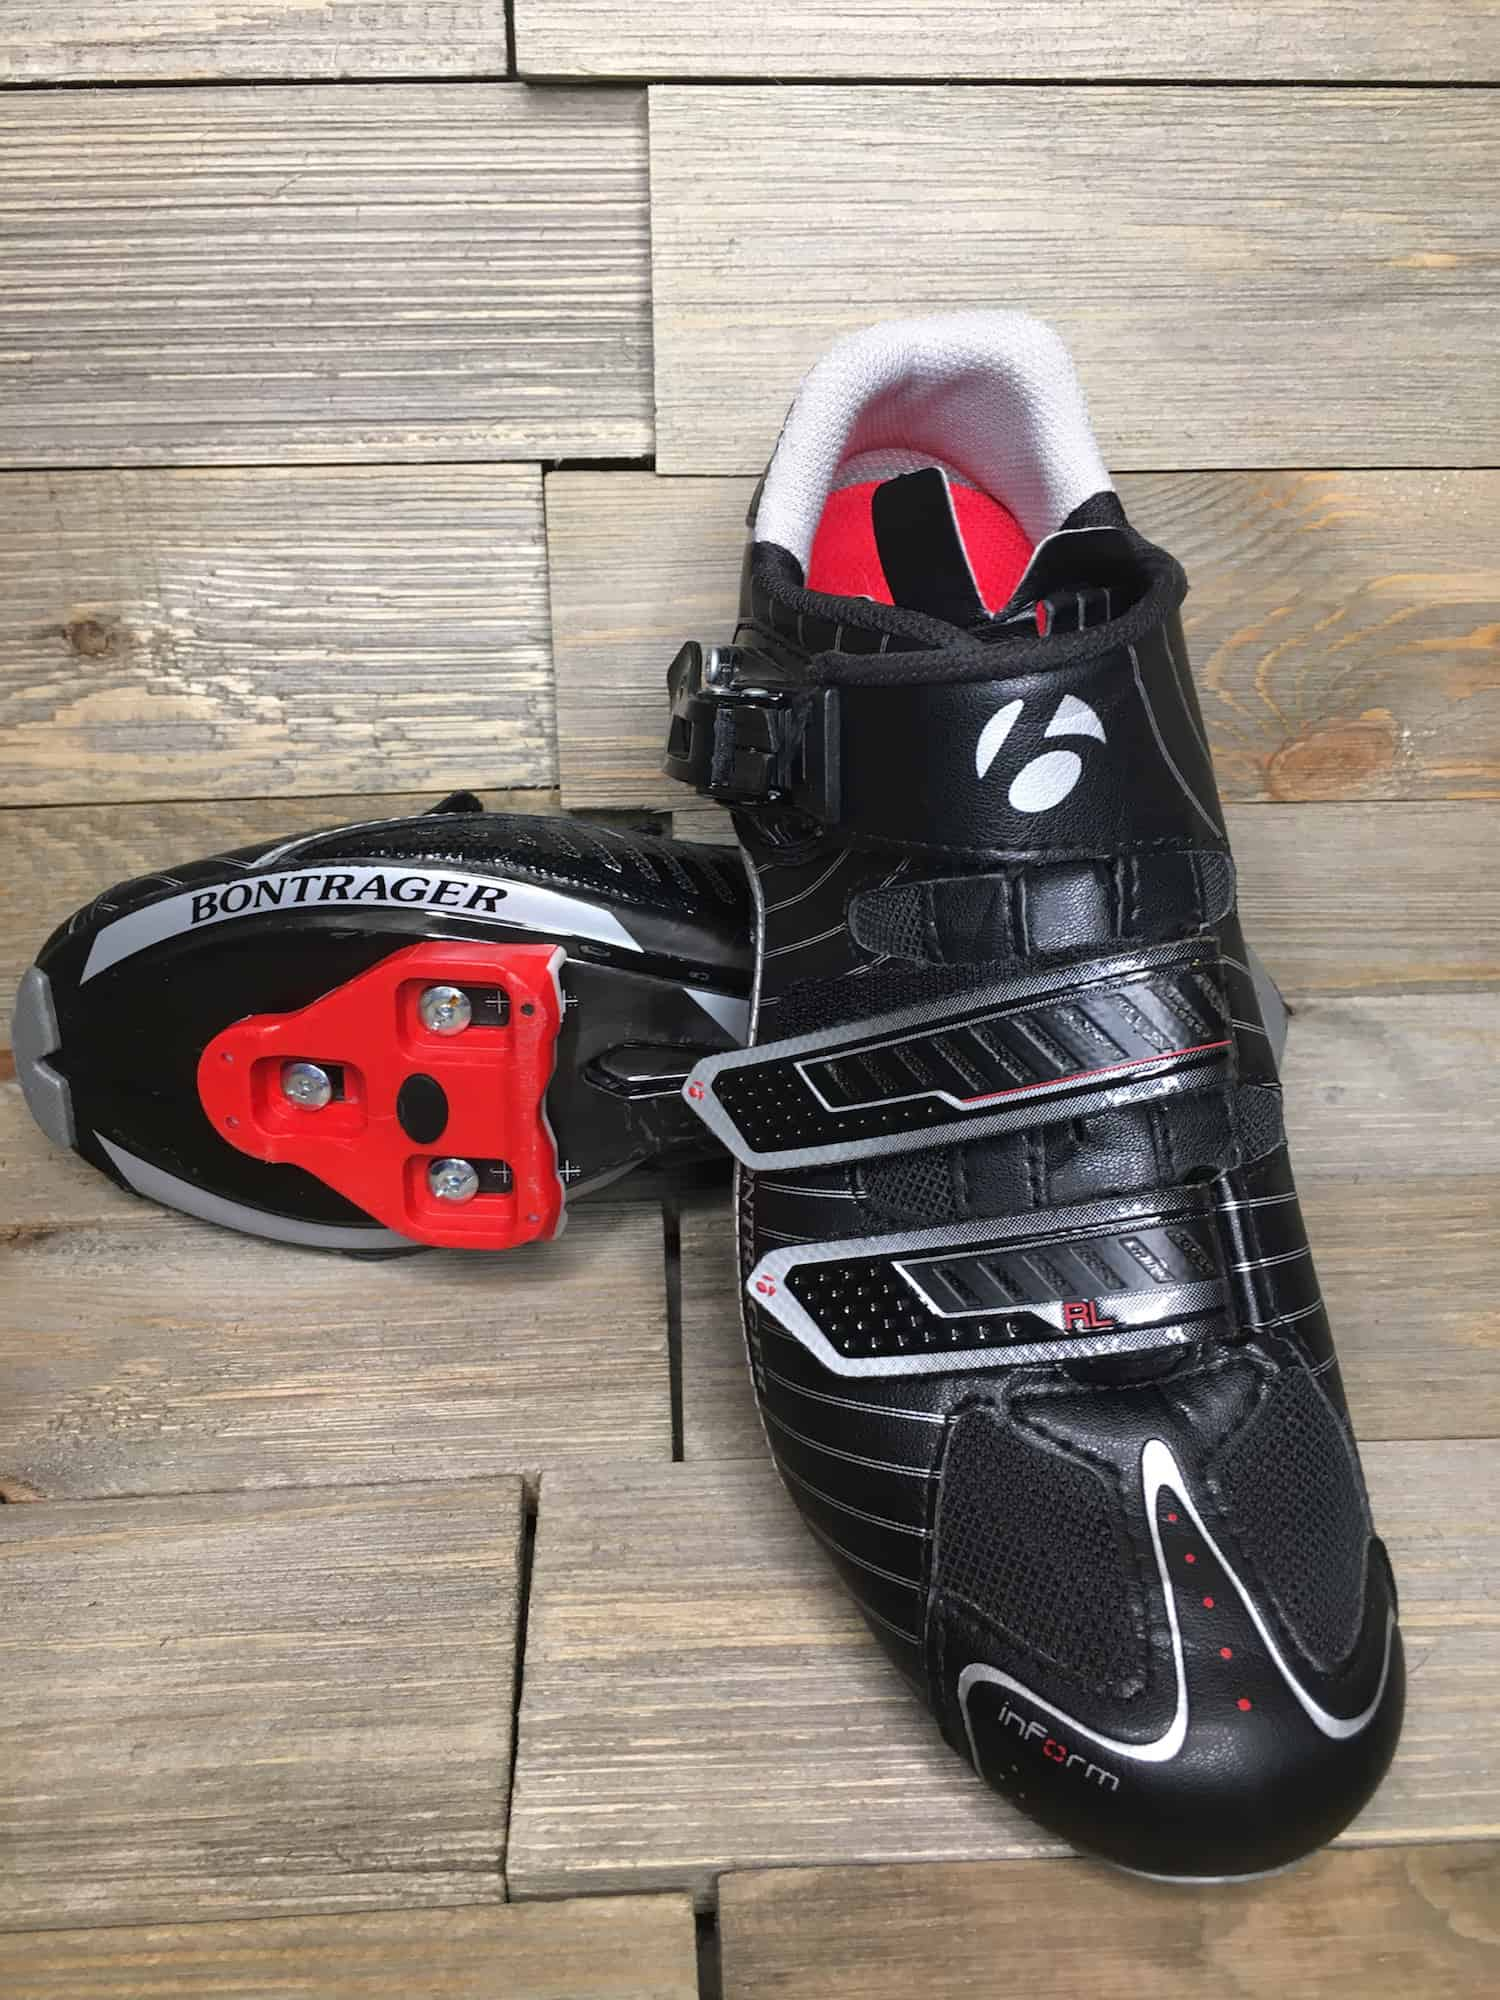 bontrager peloton bike shoes